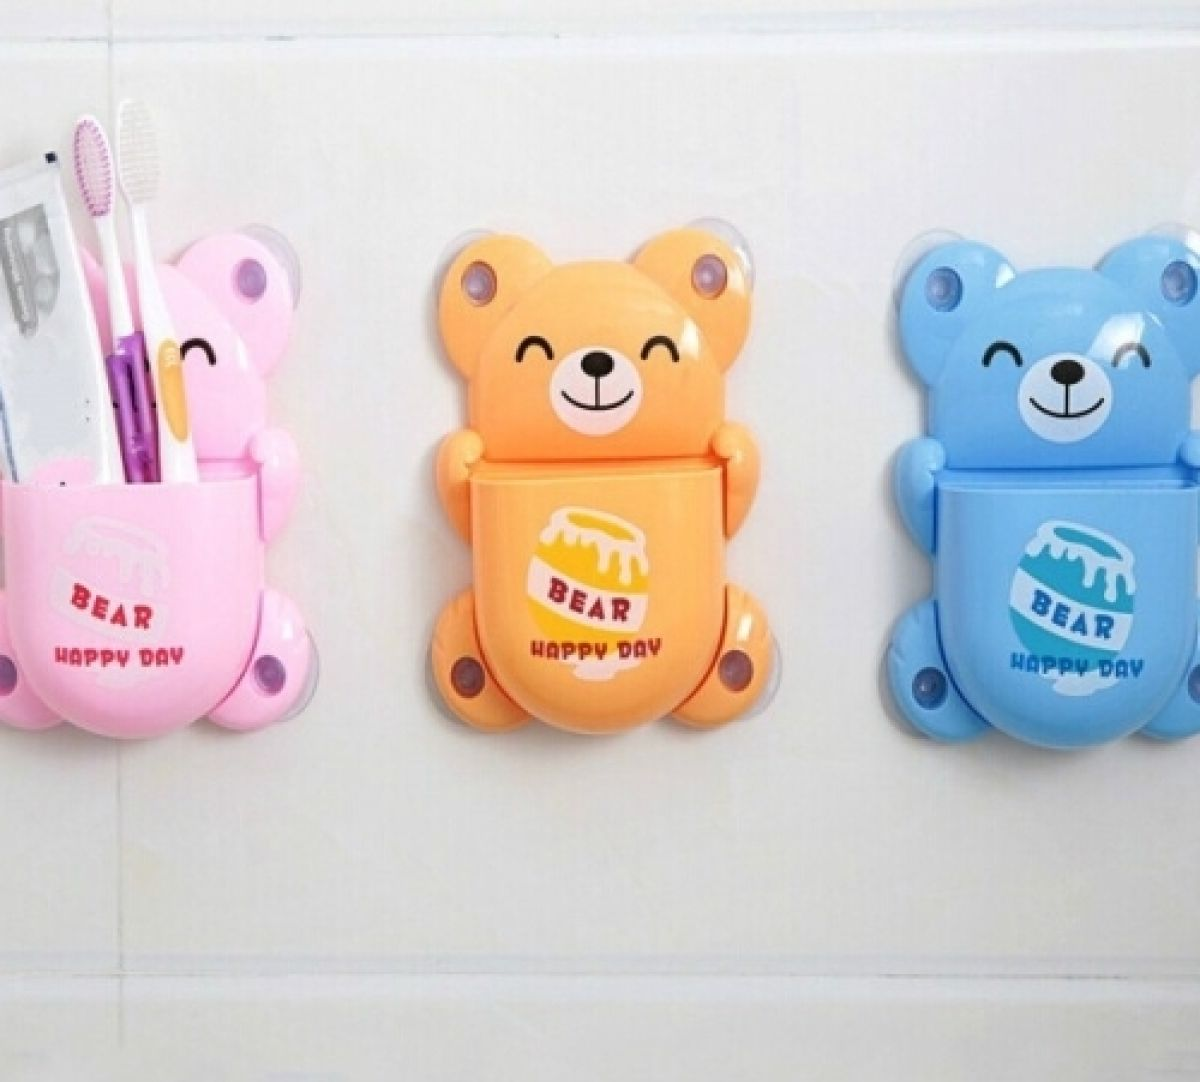 Bear Toothbrush Holder (1 Piece) Color May Vary